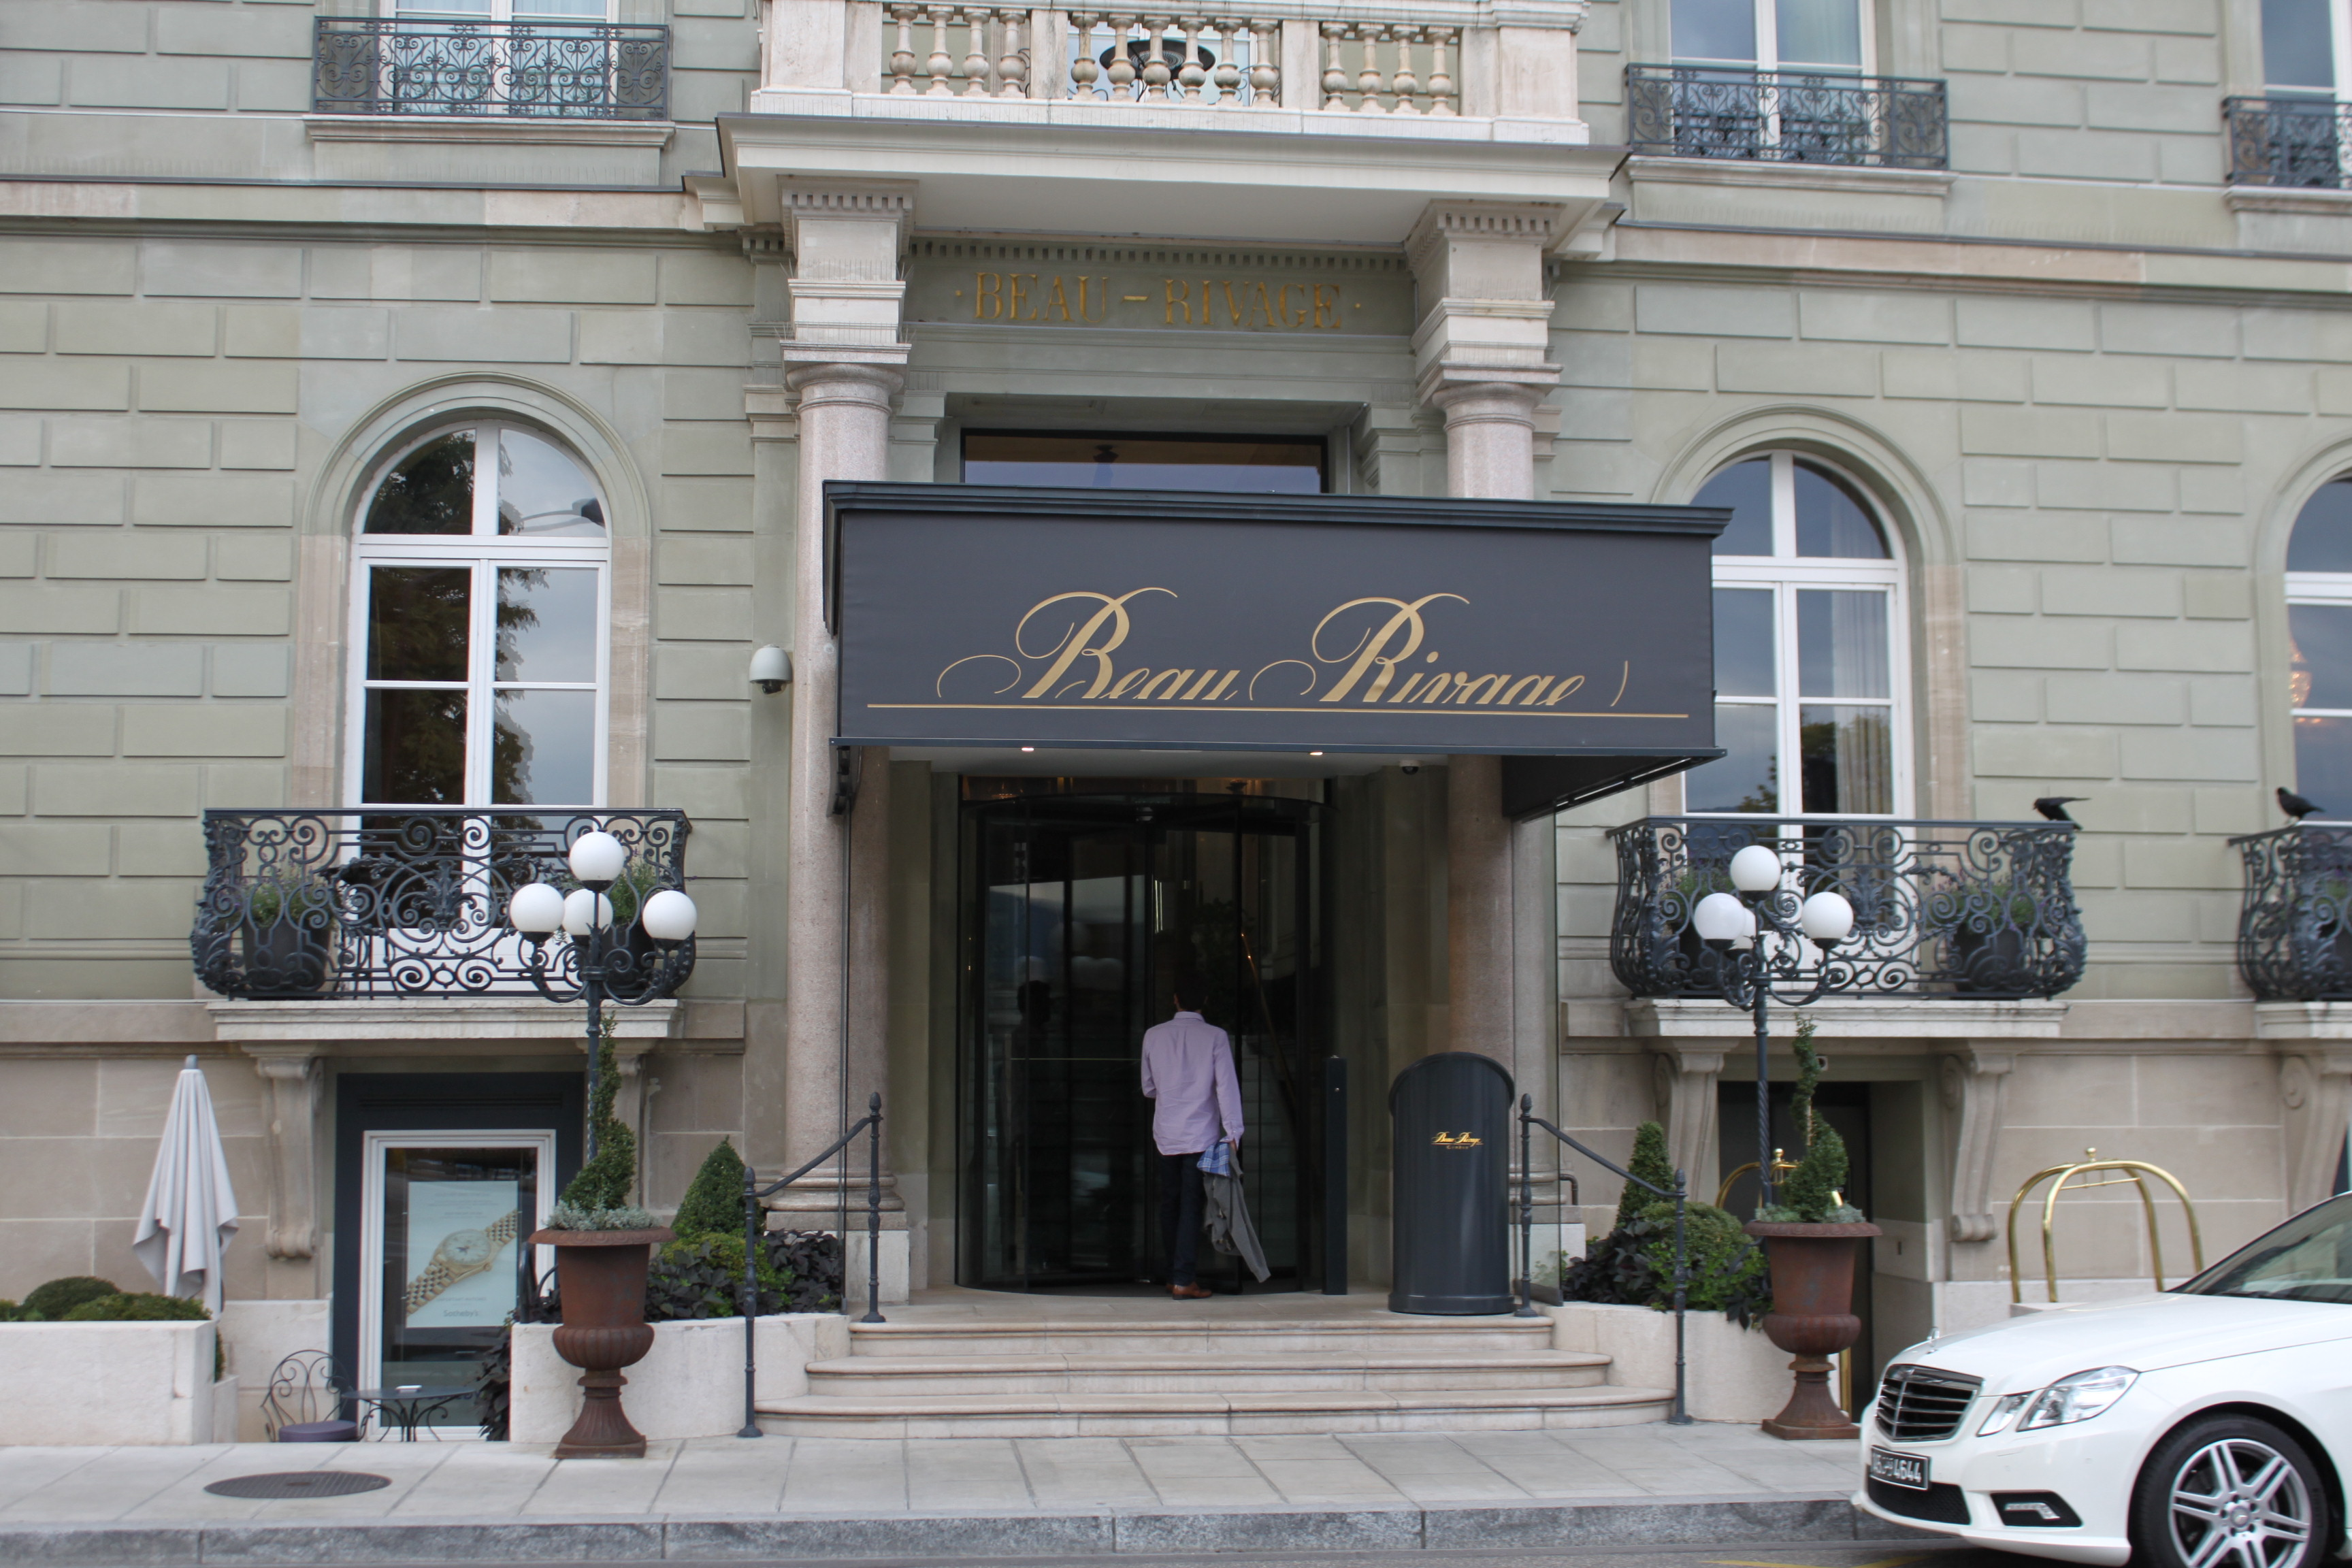 Hotel beau rivage a family affair in geneva sam and - Hotel beau rivage la cuisine ...